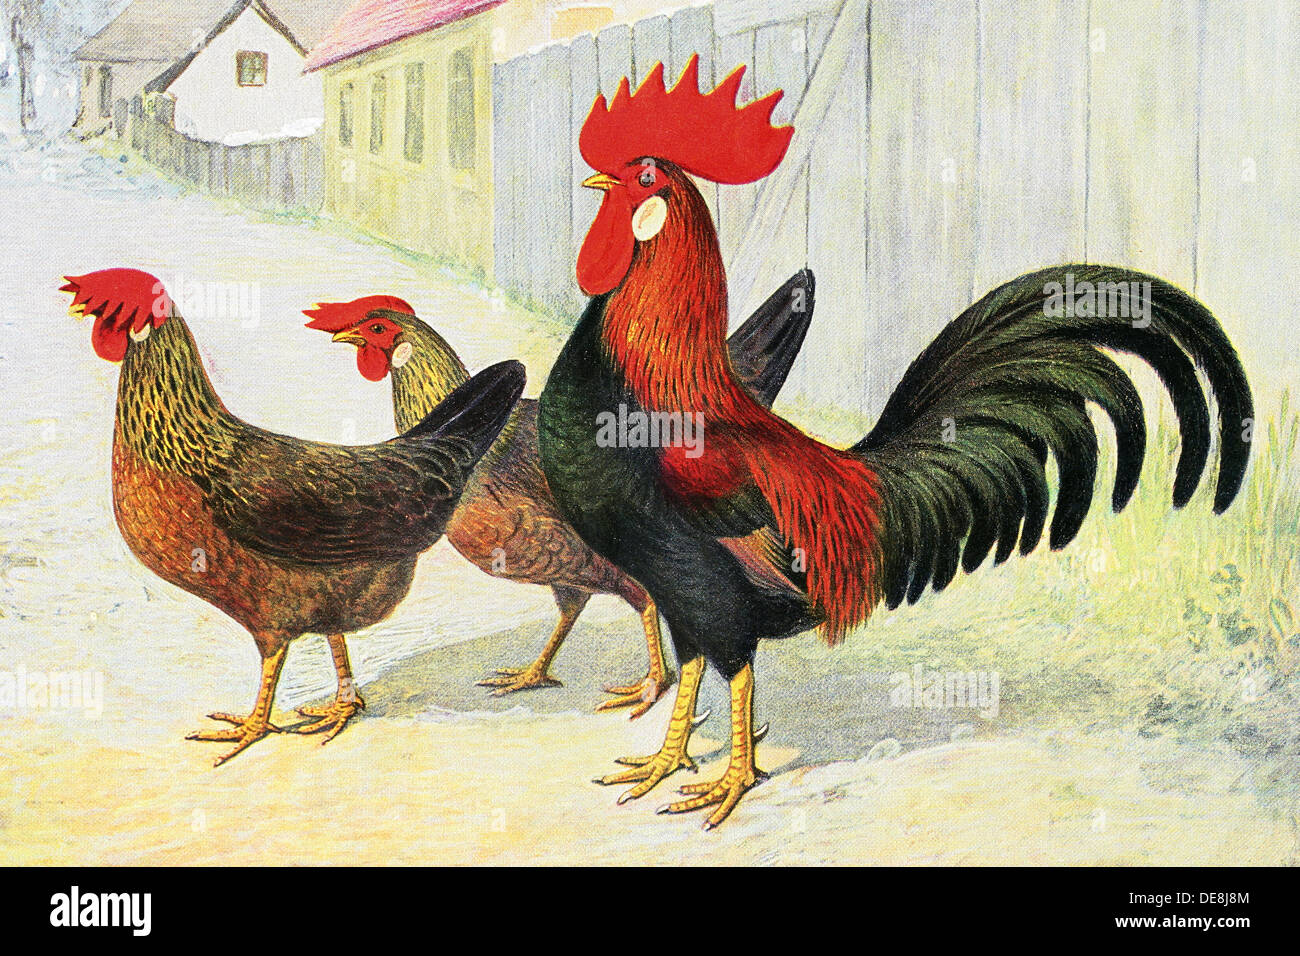 original illustration of a chicken rooster bird in a vintage